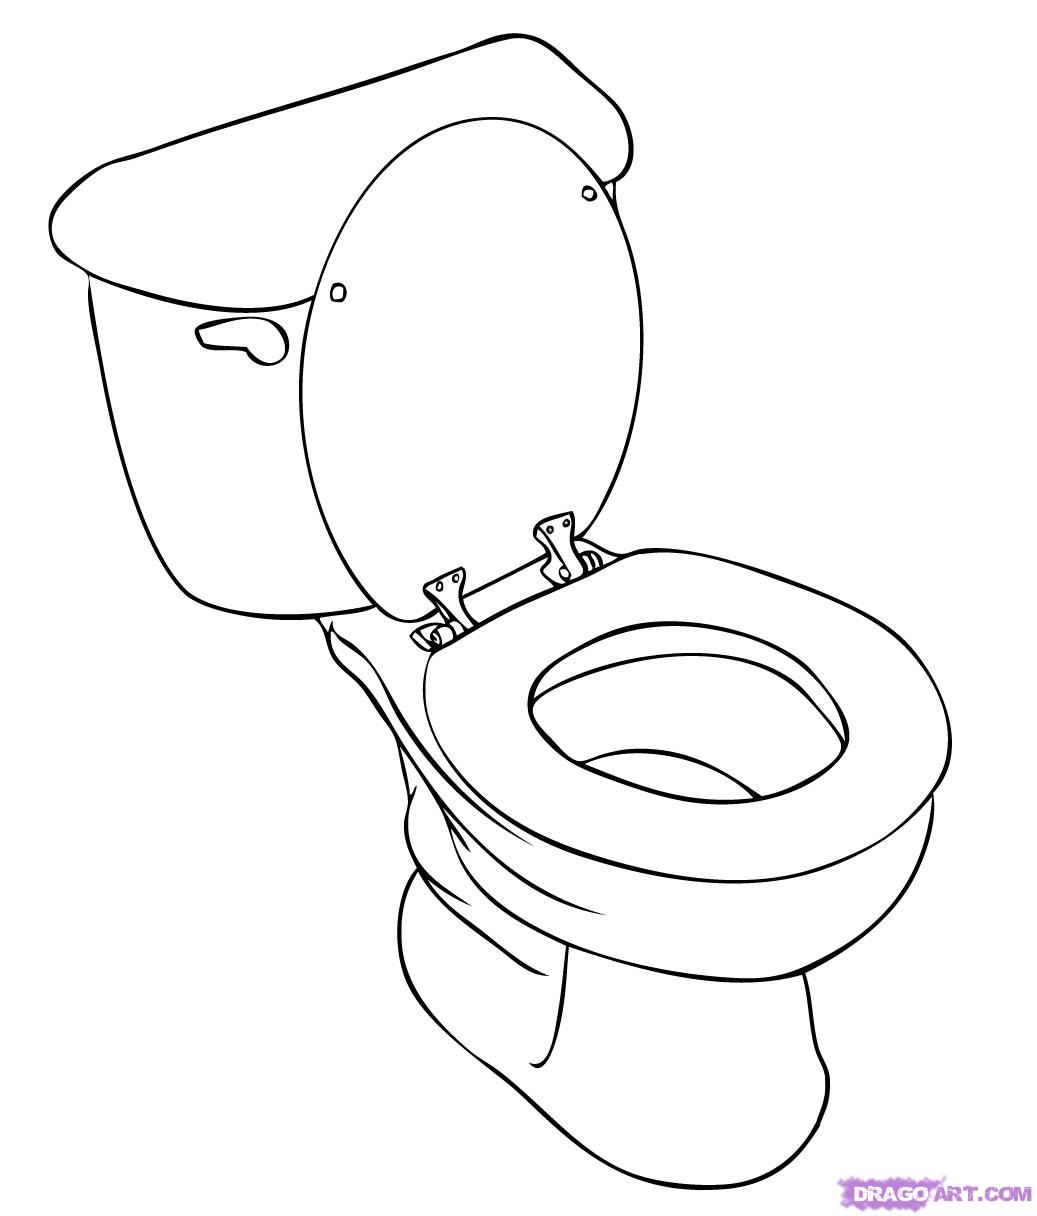 How to Draw a Toilet, Step by Step, Stuff, Pop Culture, FREE.